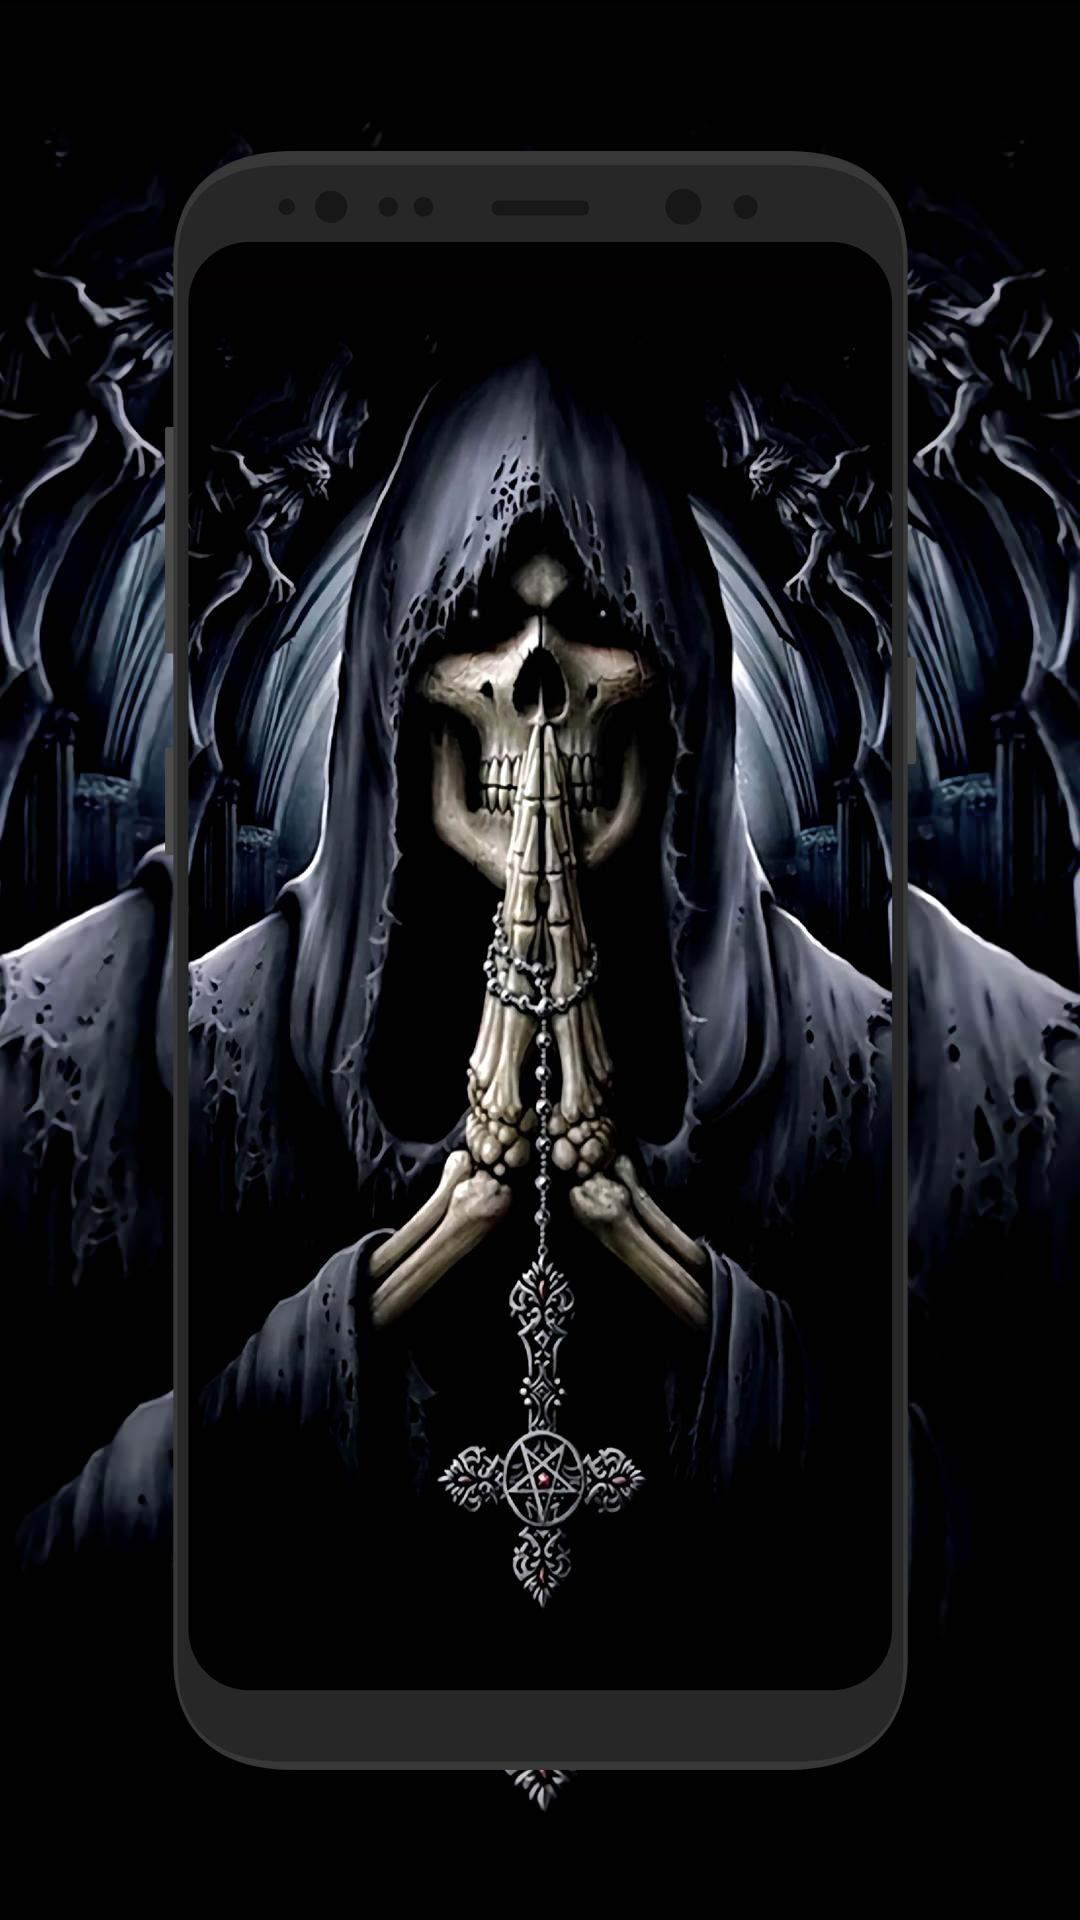 Grim Reaper HD Wallpapers 4k for Android - APK Download